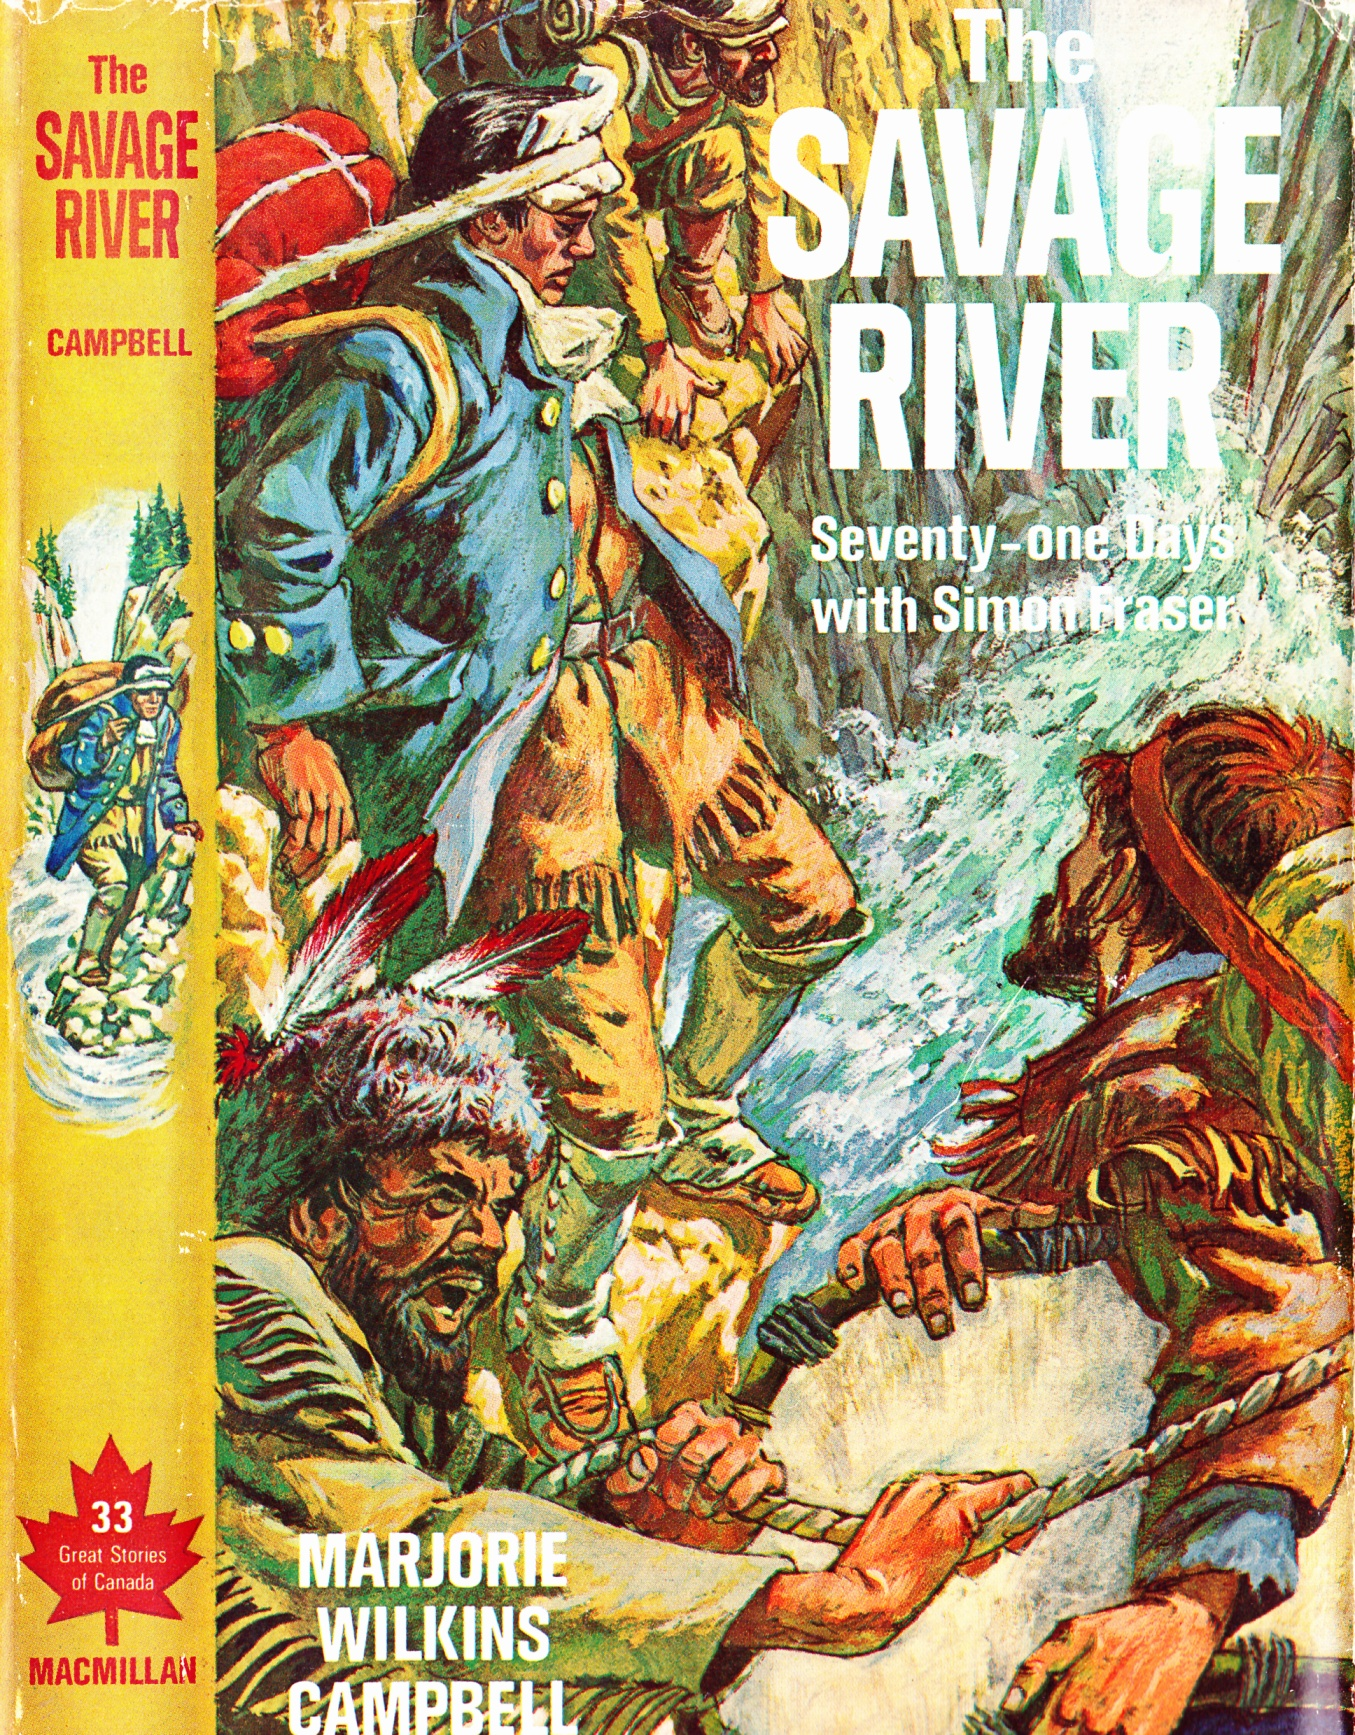 C:\Users\Robert\Documents\CARTOONING ILLUSTRATION ANIMATION\IMAGE BY CARTOONIST\P\PARKER Lewis, The Savage River, 1968,_0001.jpg